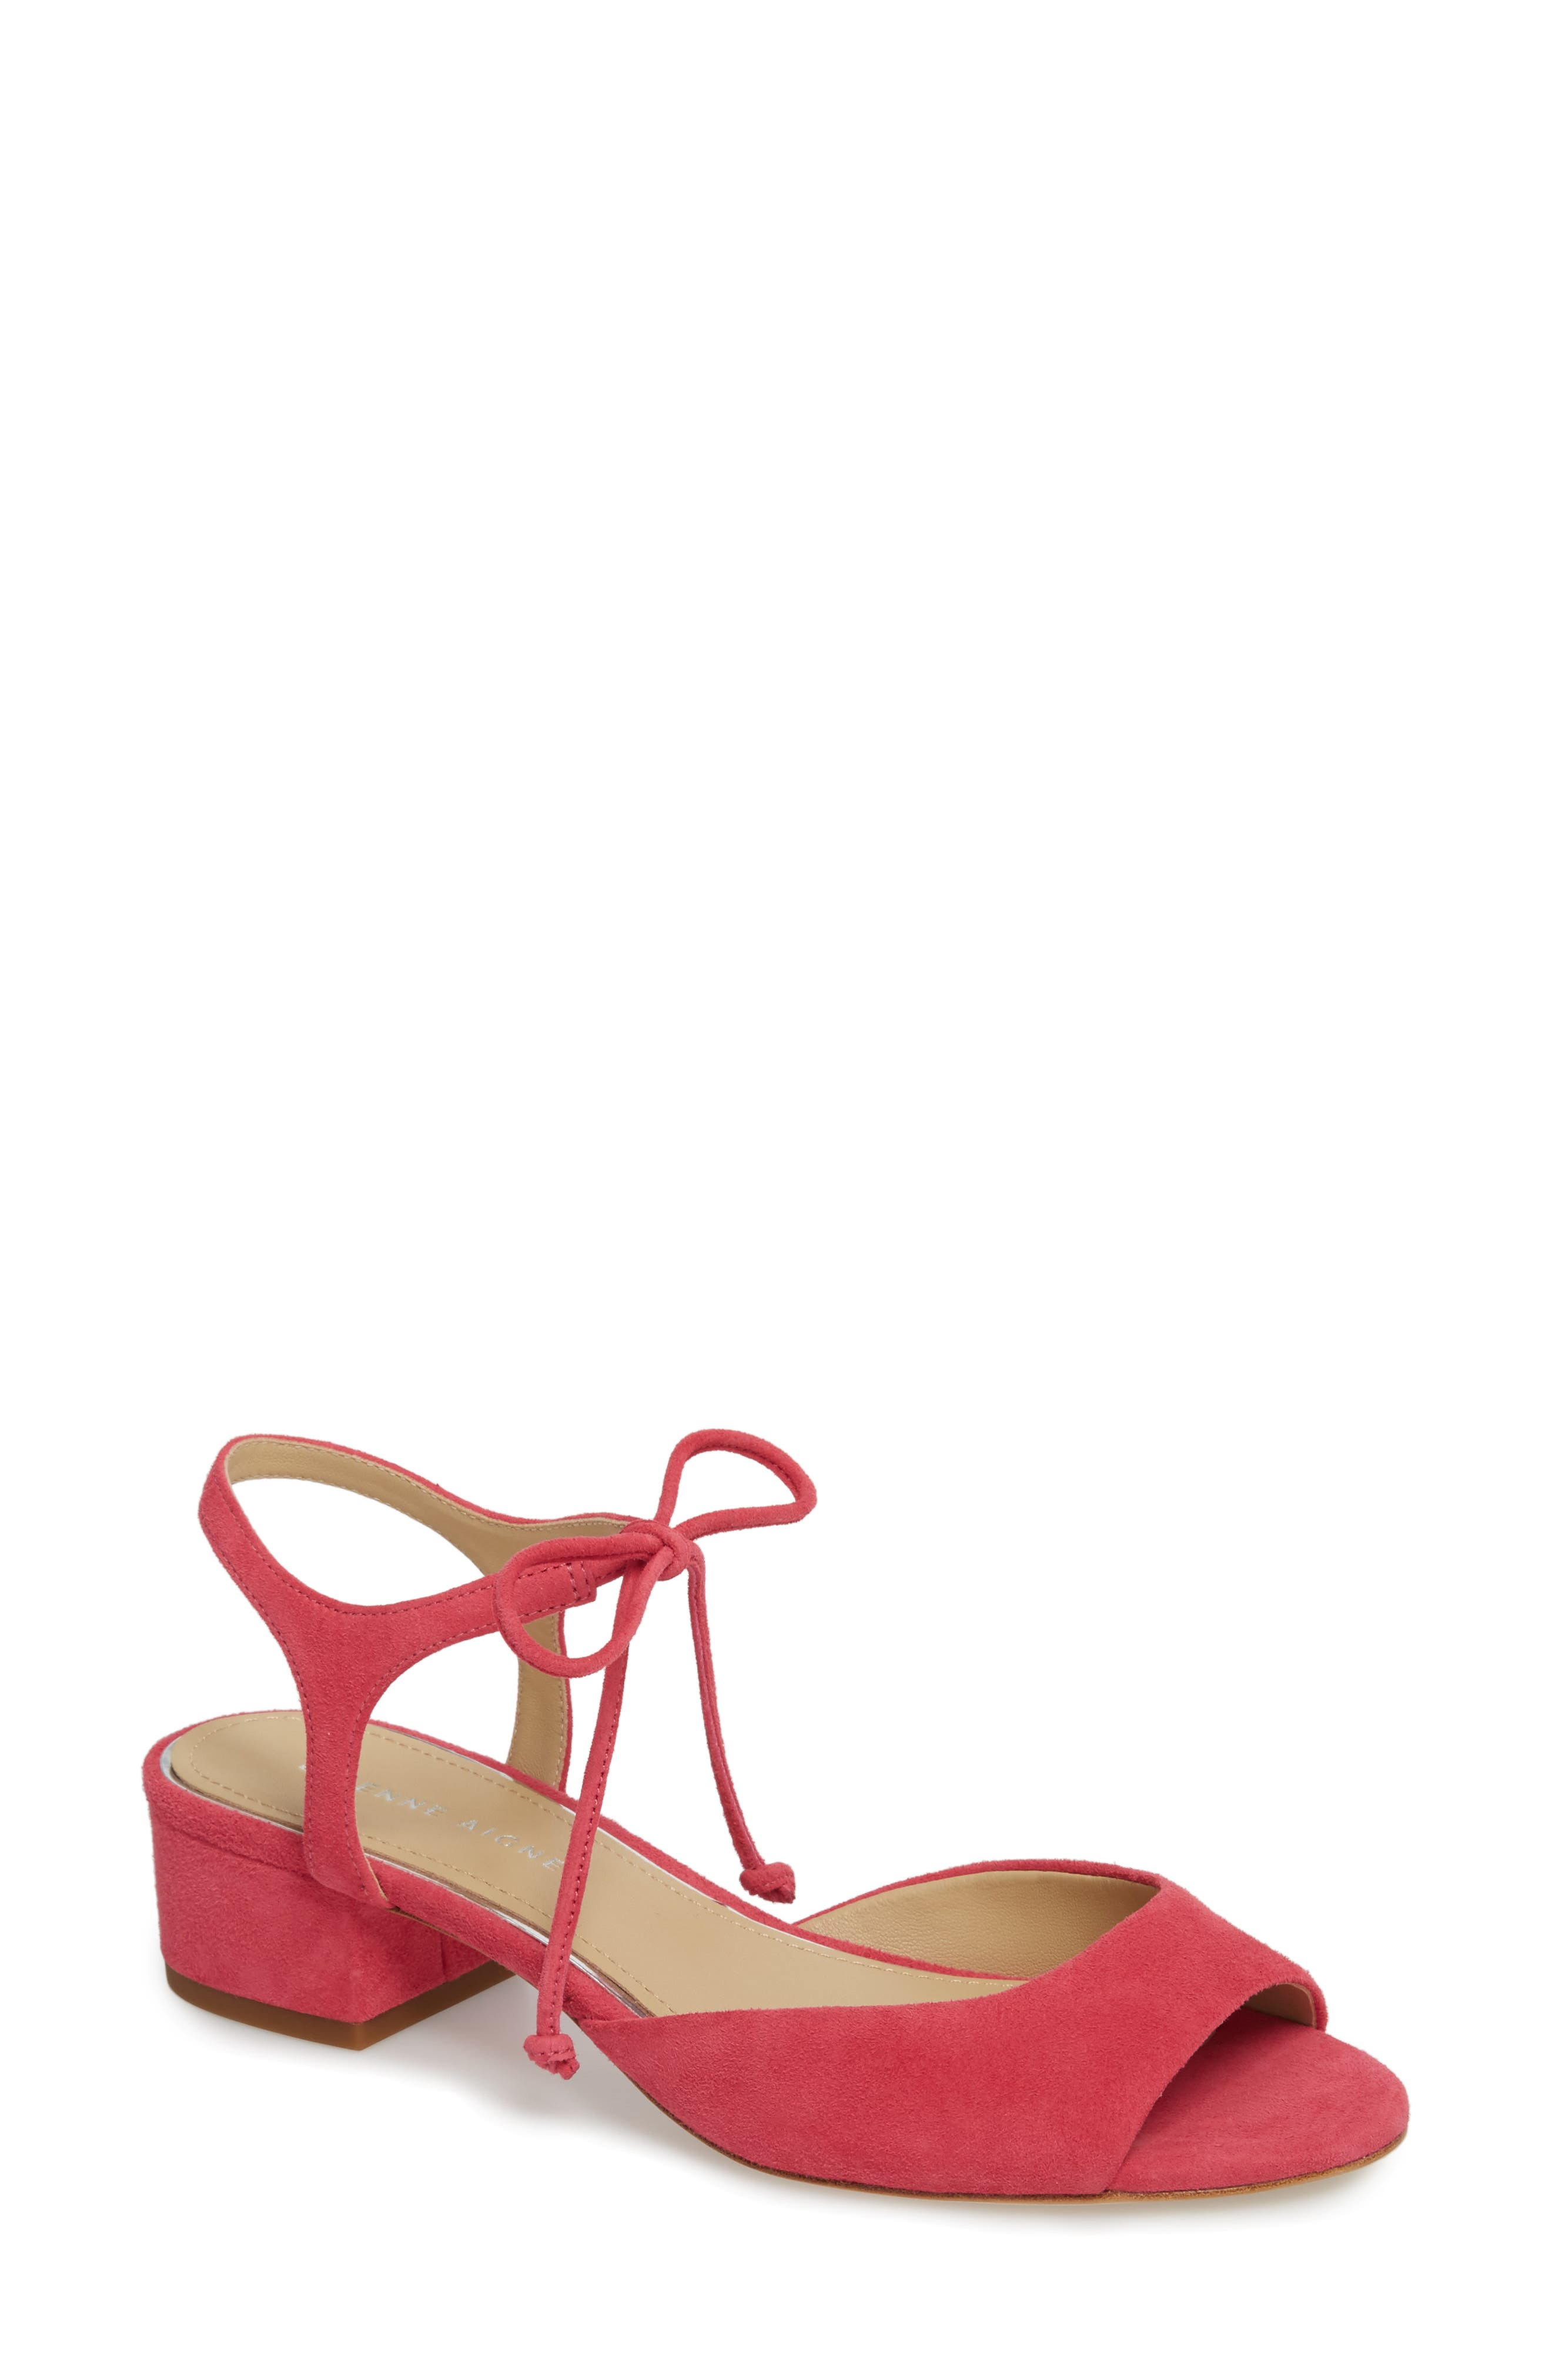 Belize Strappy Sandal,                         Main,                         color, Peony Suede